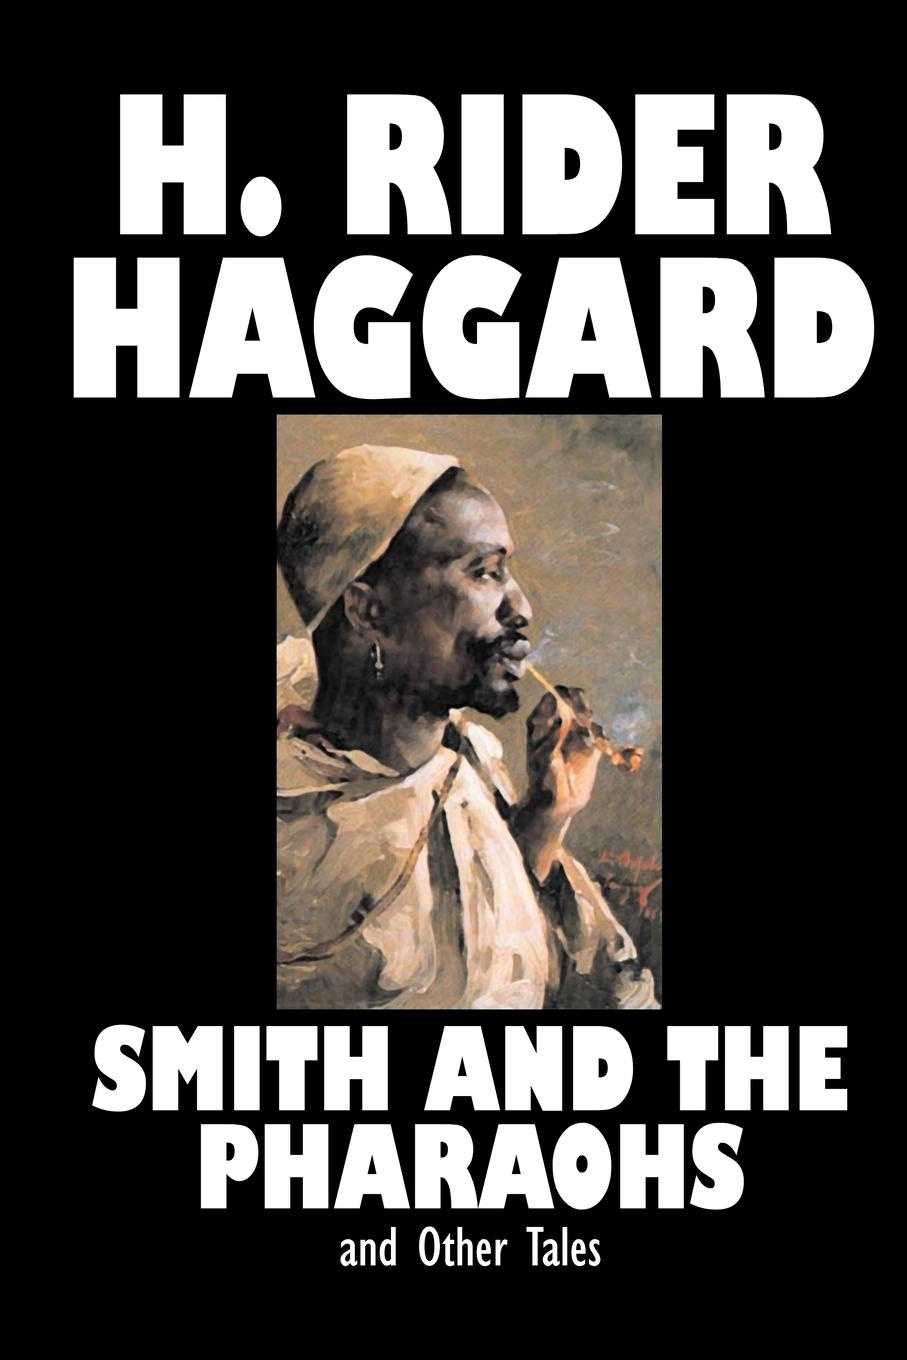 цена H. Rider Haggard Smith and the Pharaohs and Other Tales by H. Rider Haggard, Fiction, Fantasy, Historical, Fairy Tales, Folk Tales, Legends & Mythology, Short Stories онлайн в 2017 году